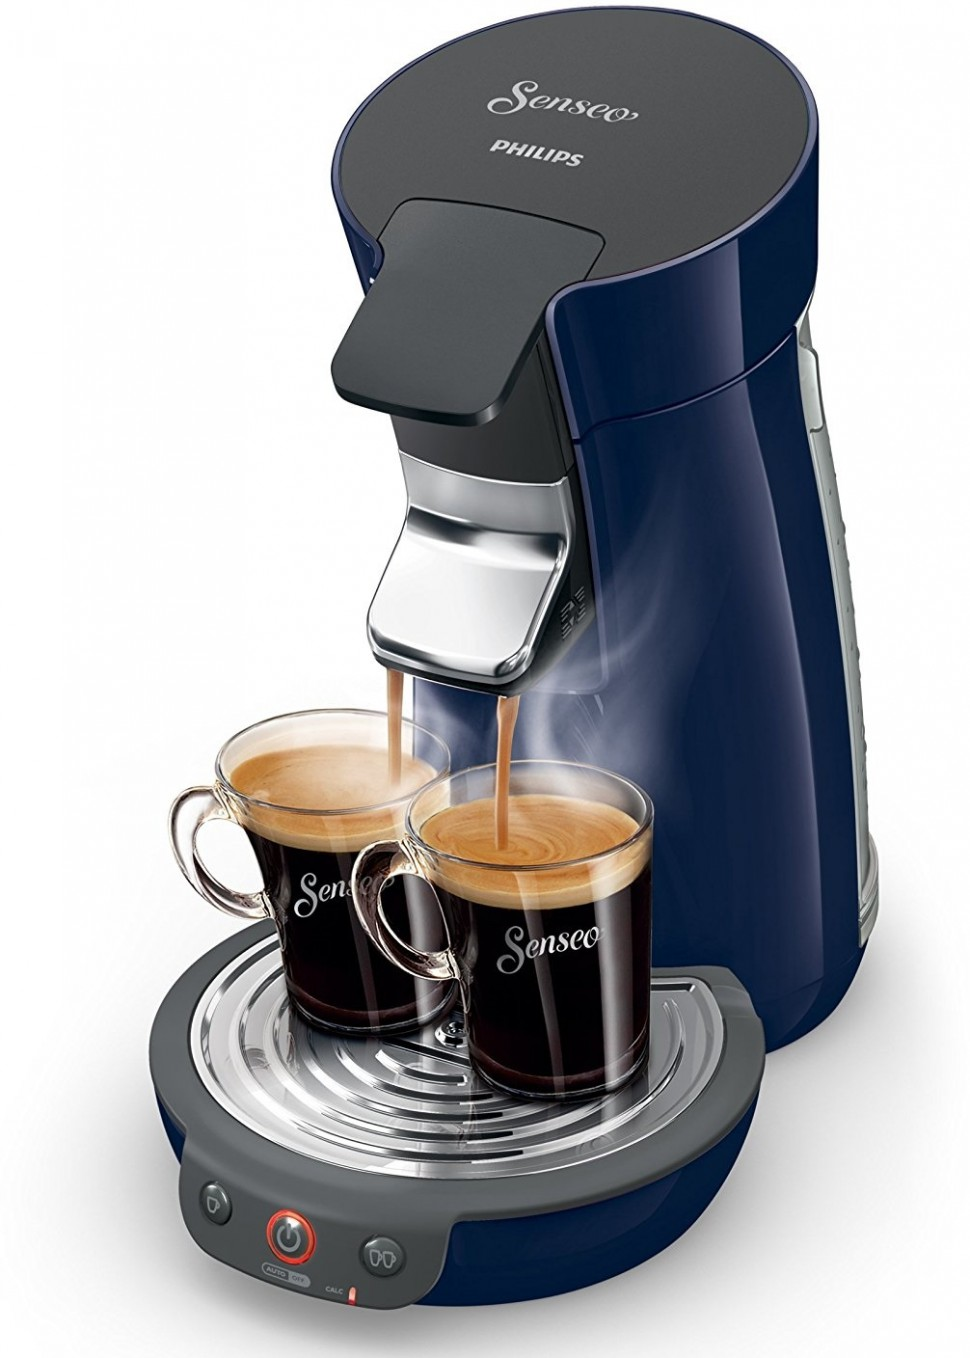 philips senseo hd7825 46 viva cafe coffee pod machine blue. Black Bedroom Furniture Sets. Home Design Ideas